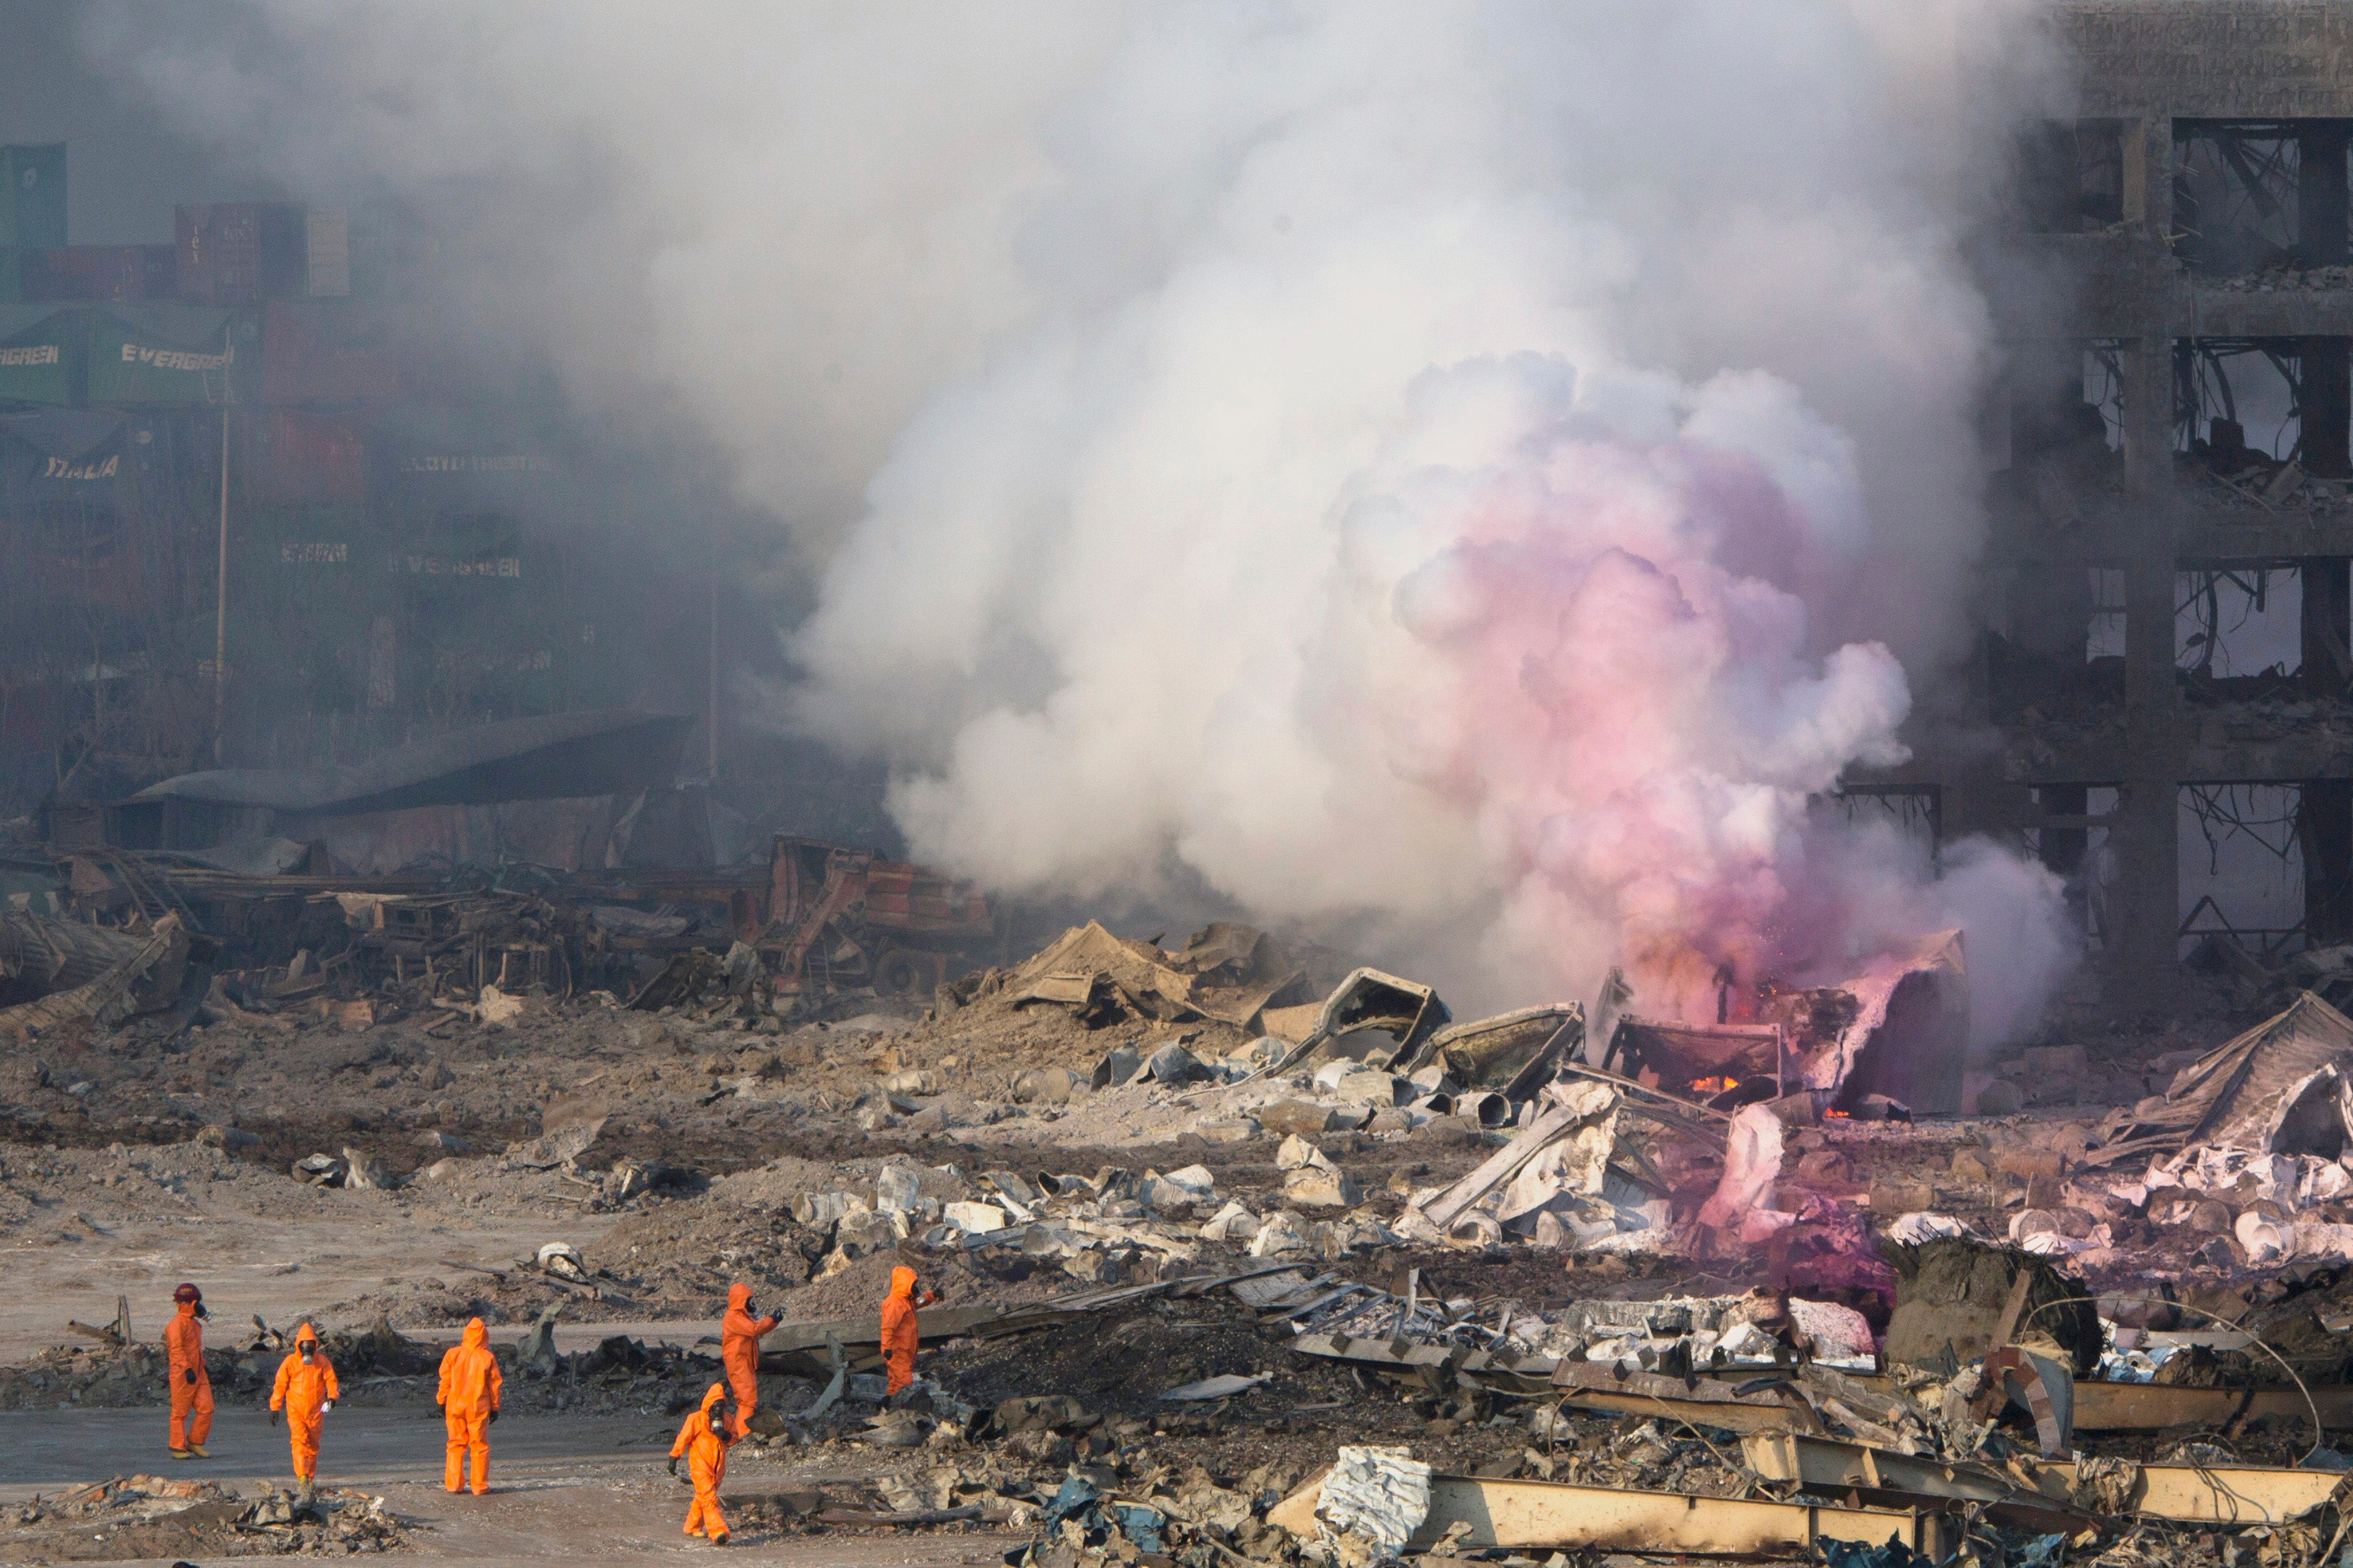 Tianjin Blasts Released So Much Energy They Looked Like Earthquakes